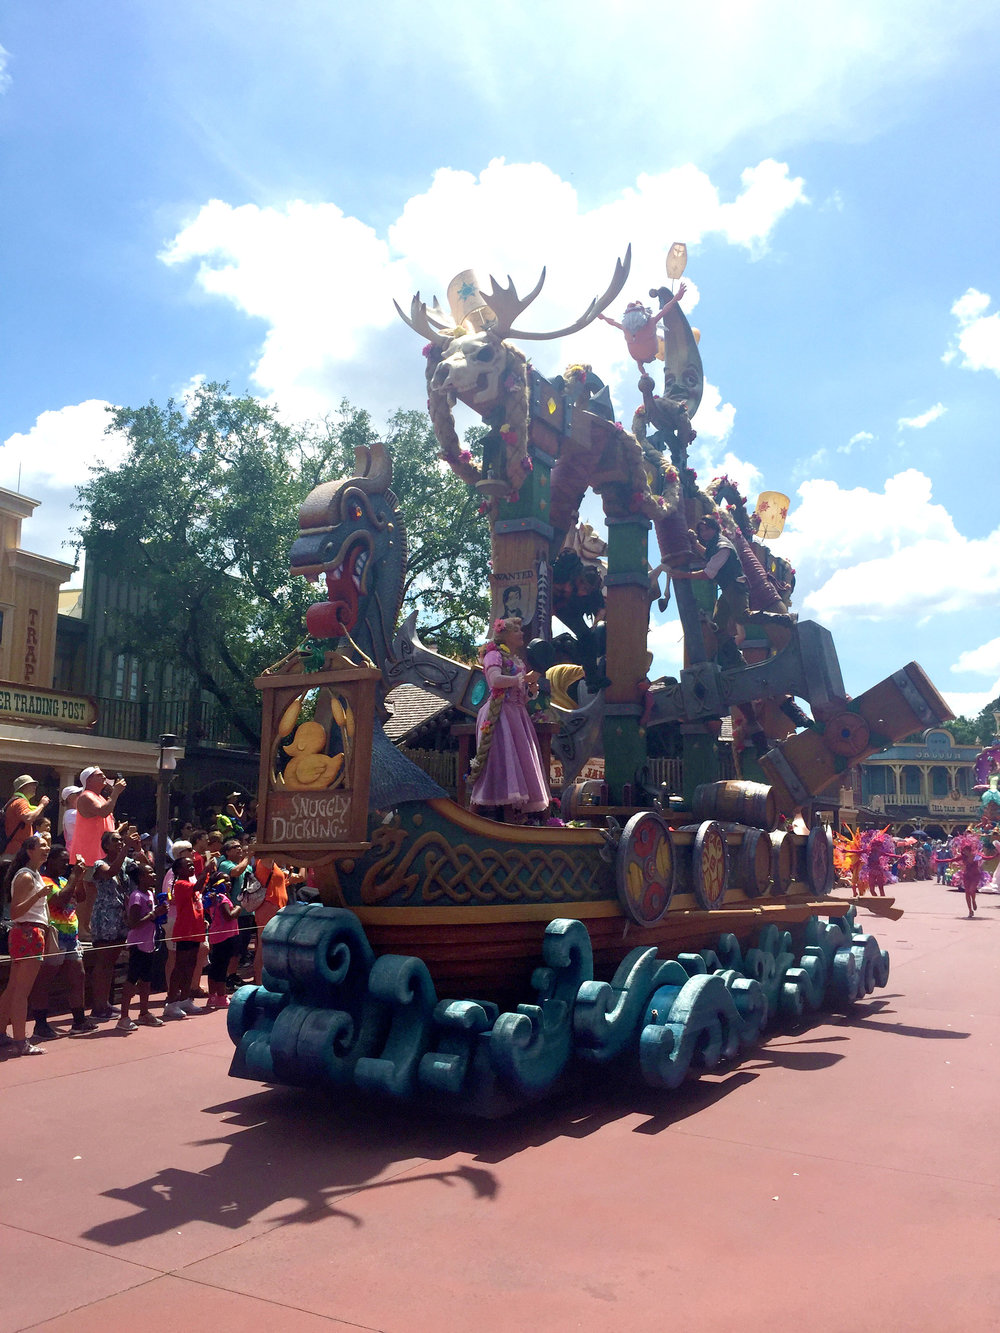 The float, which looks like a giant boat, is so ornate and colorful! It was my favorite one in the parade!